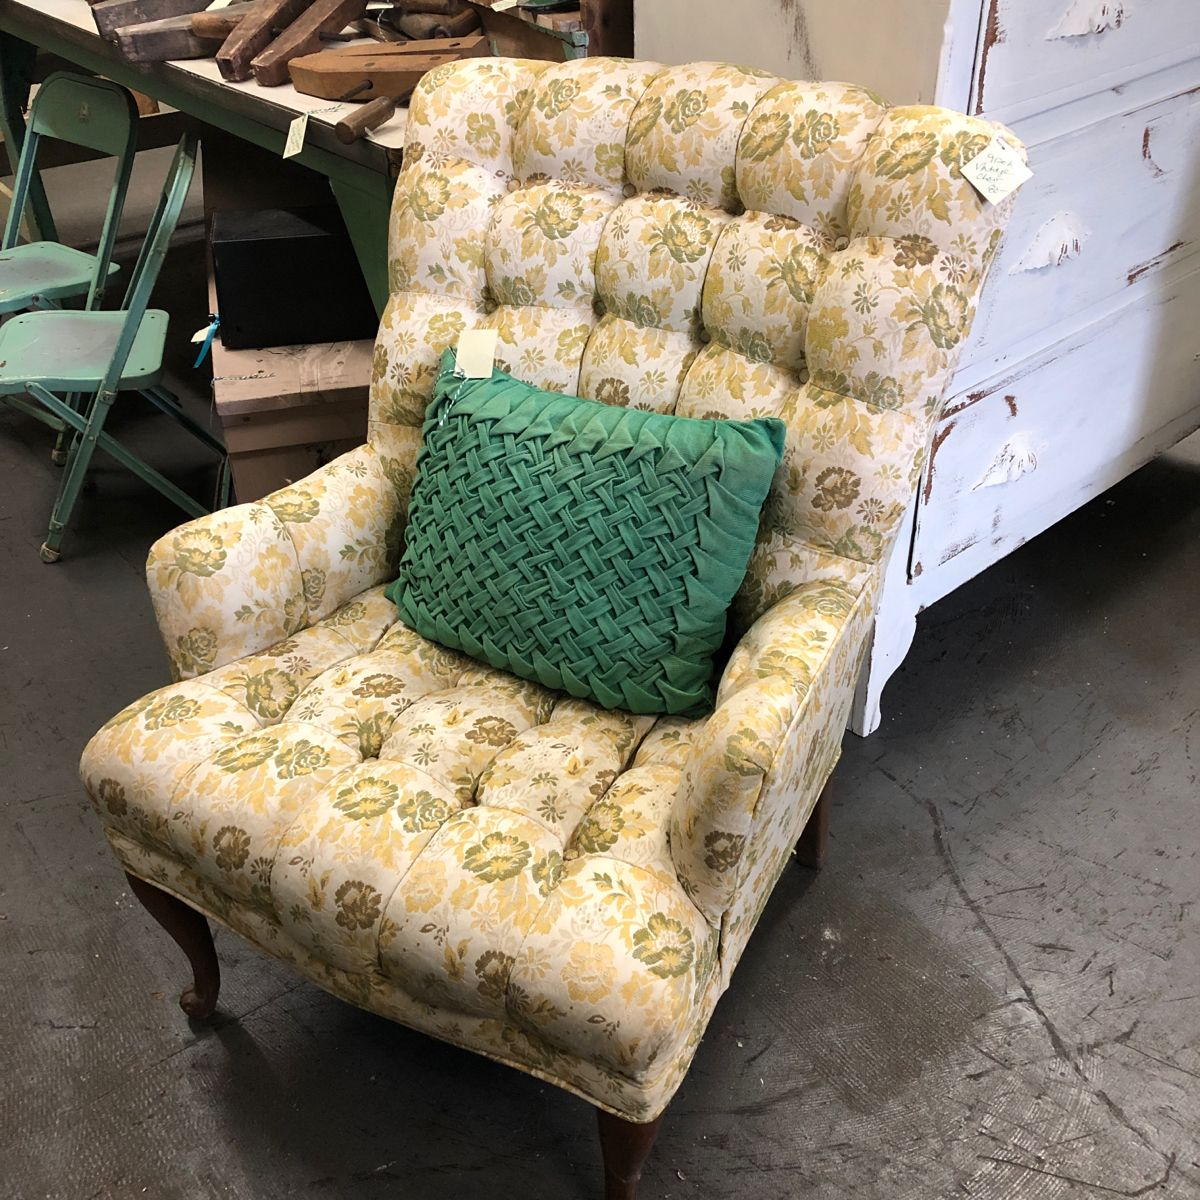 Rainy days = Cozy Chairs ($80 each) #vintagefurniture #vintage #vintagefurnitureforsale #visionsofvintage_ #vintageheartandhome #vintagegreenantiques #vintagegreen #visitgrandhaven #centertowngh